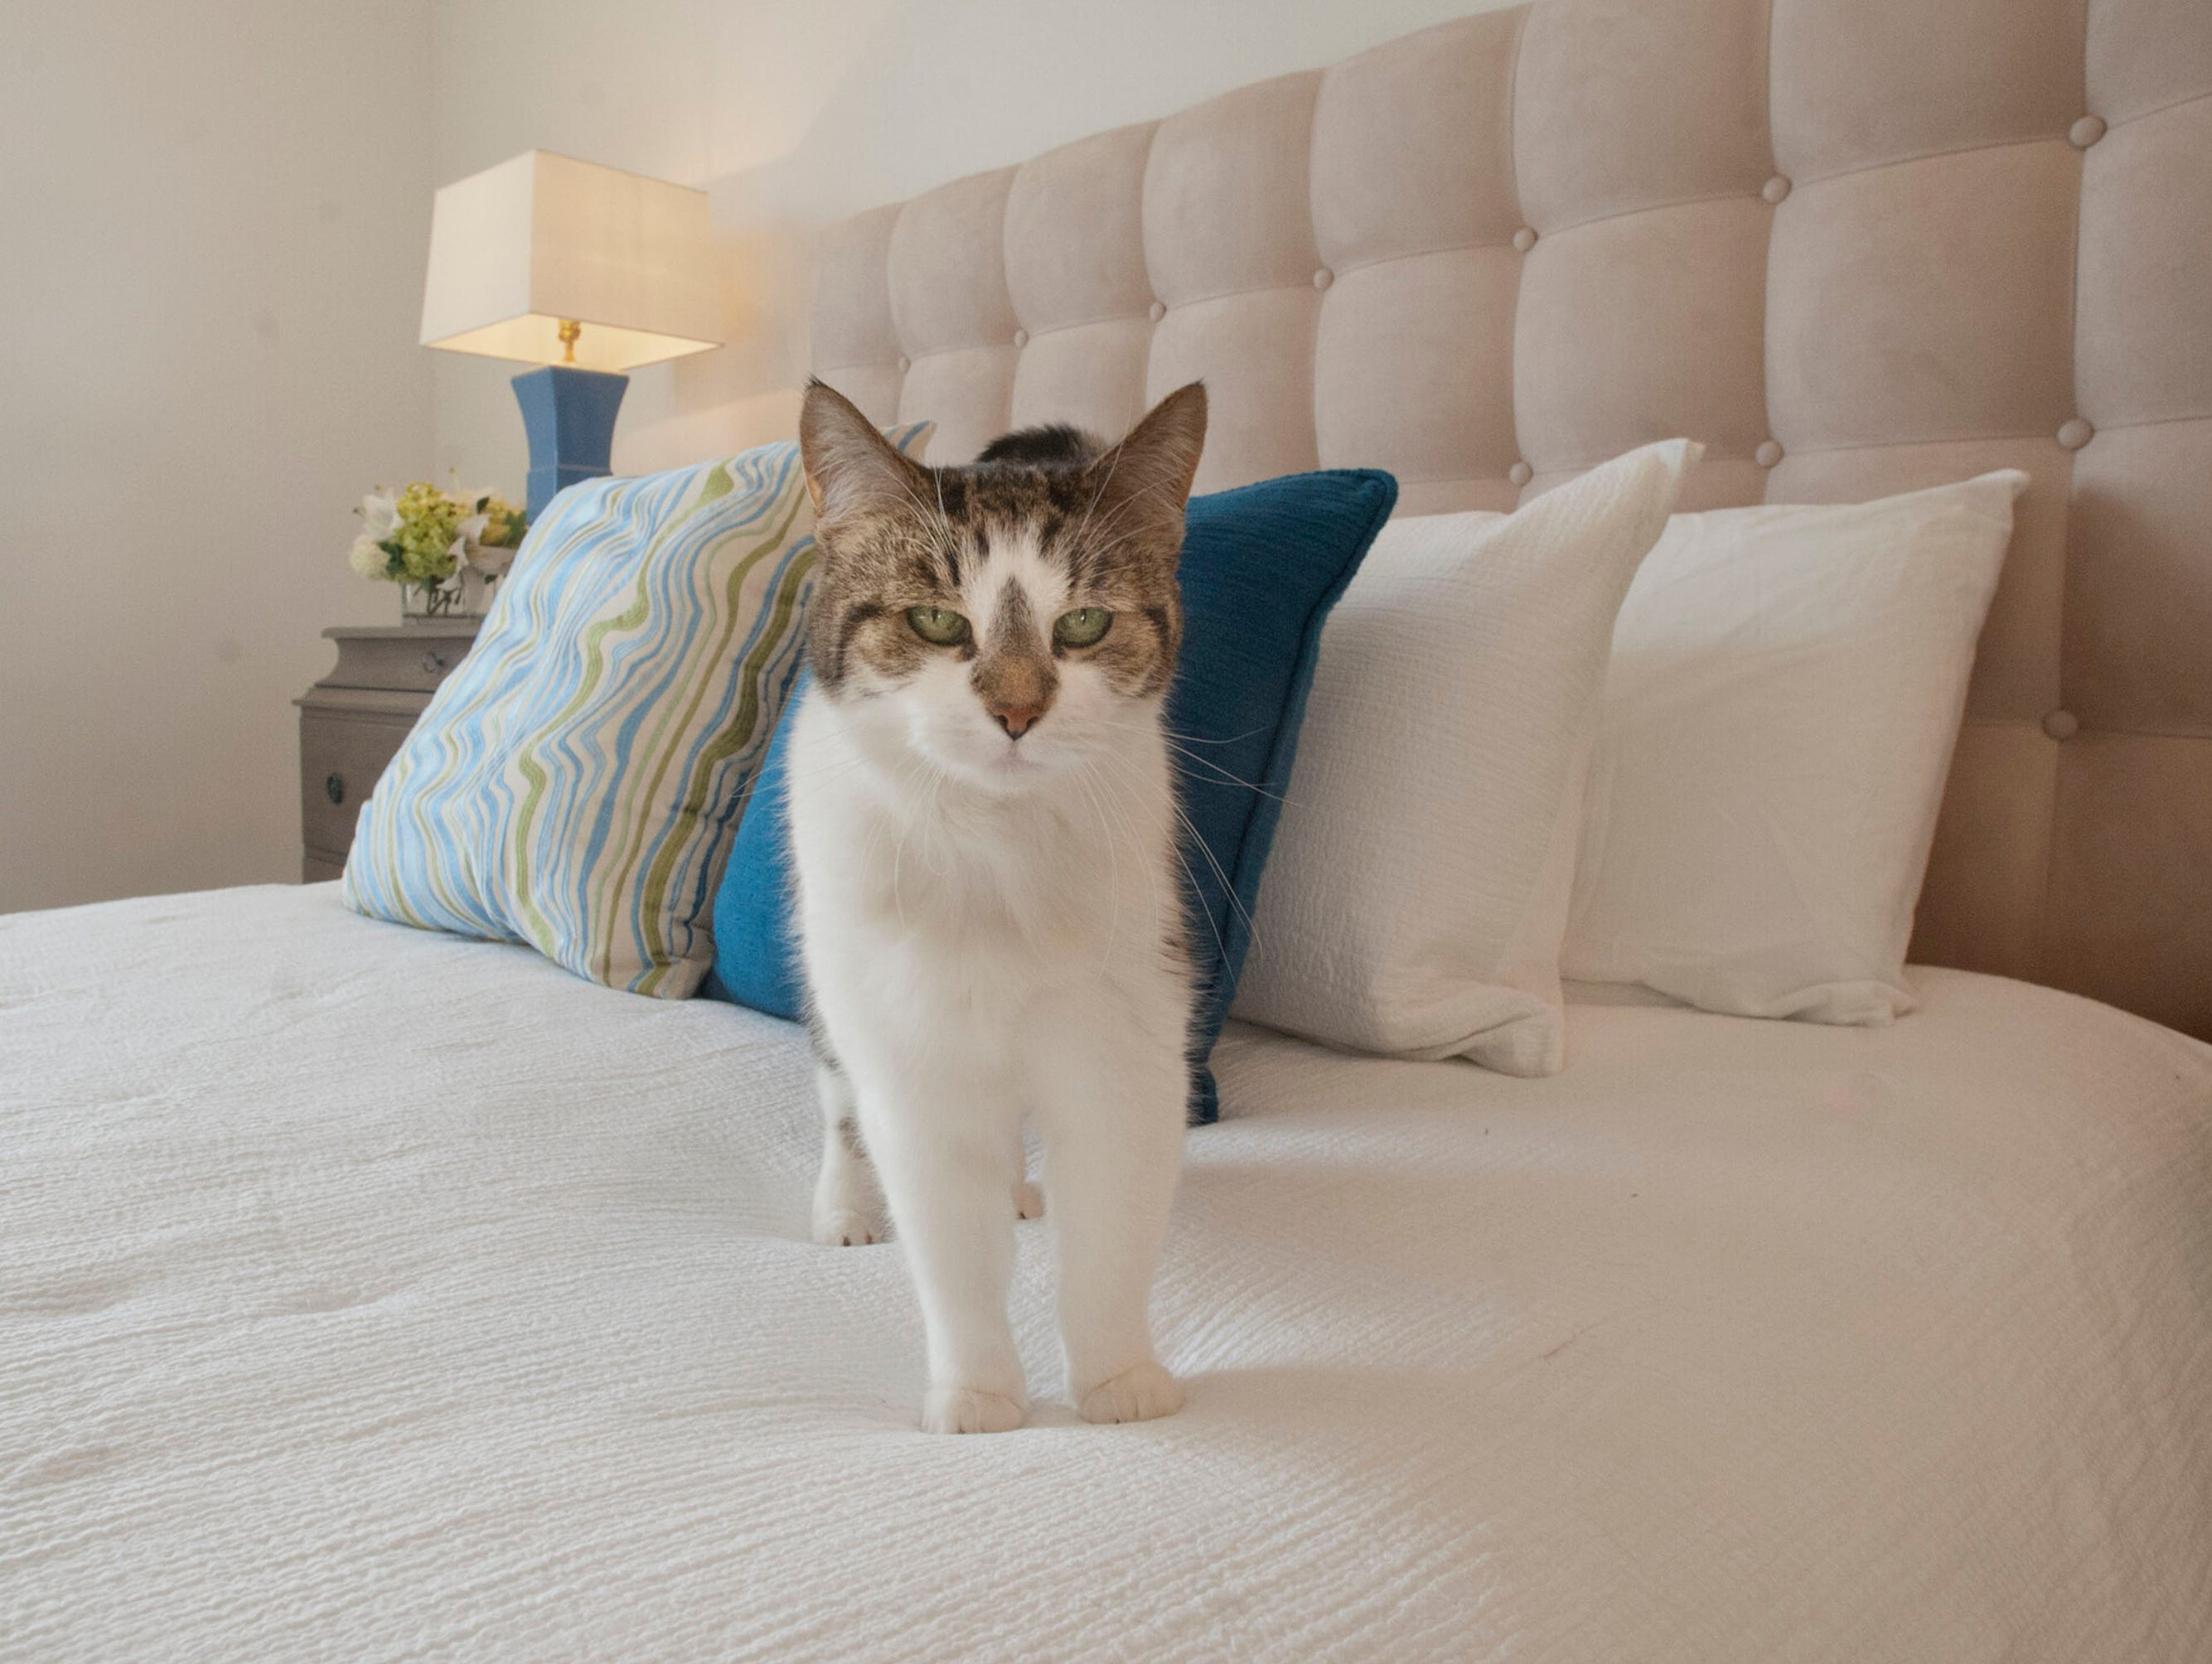 Olive the cat in the master bedroom of Denise Puthuff's condominium. 19 February 2019